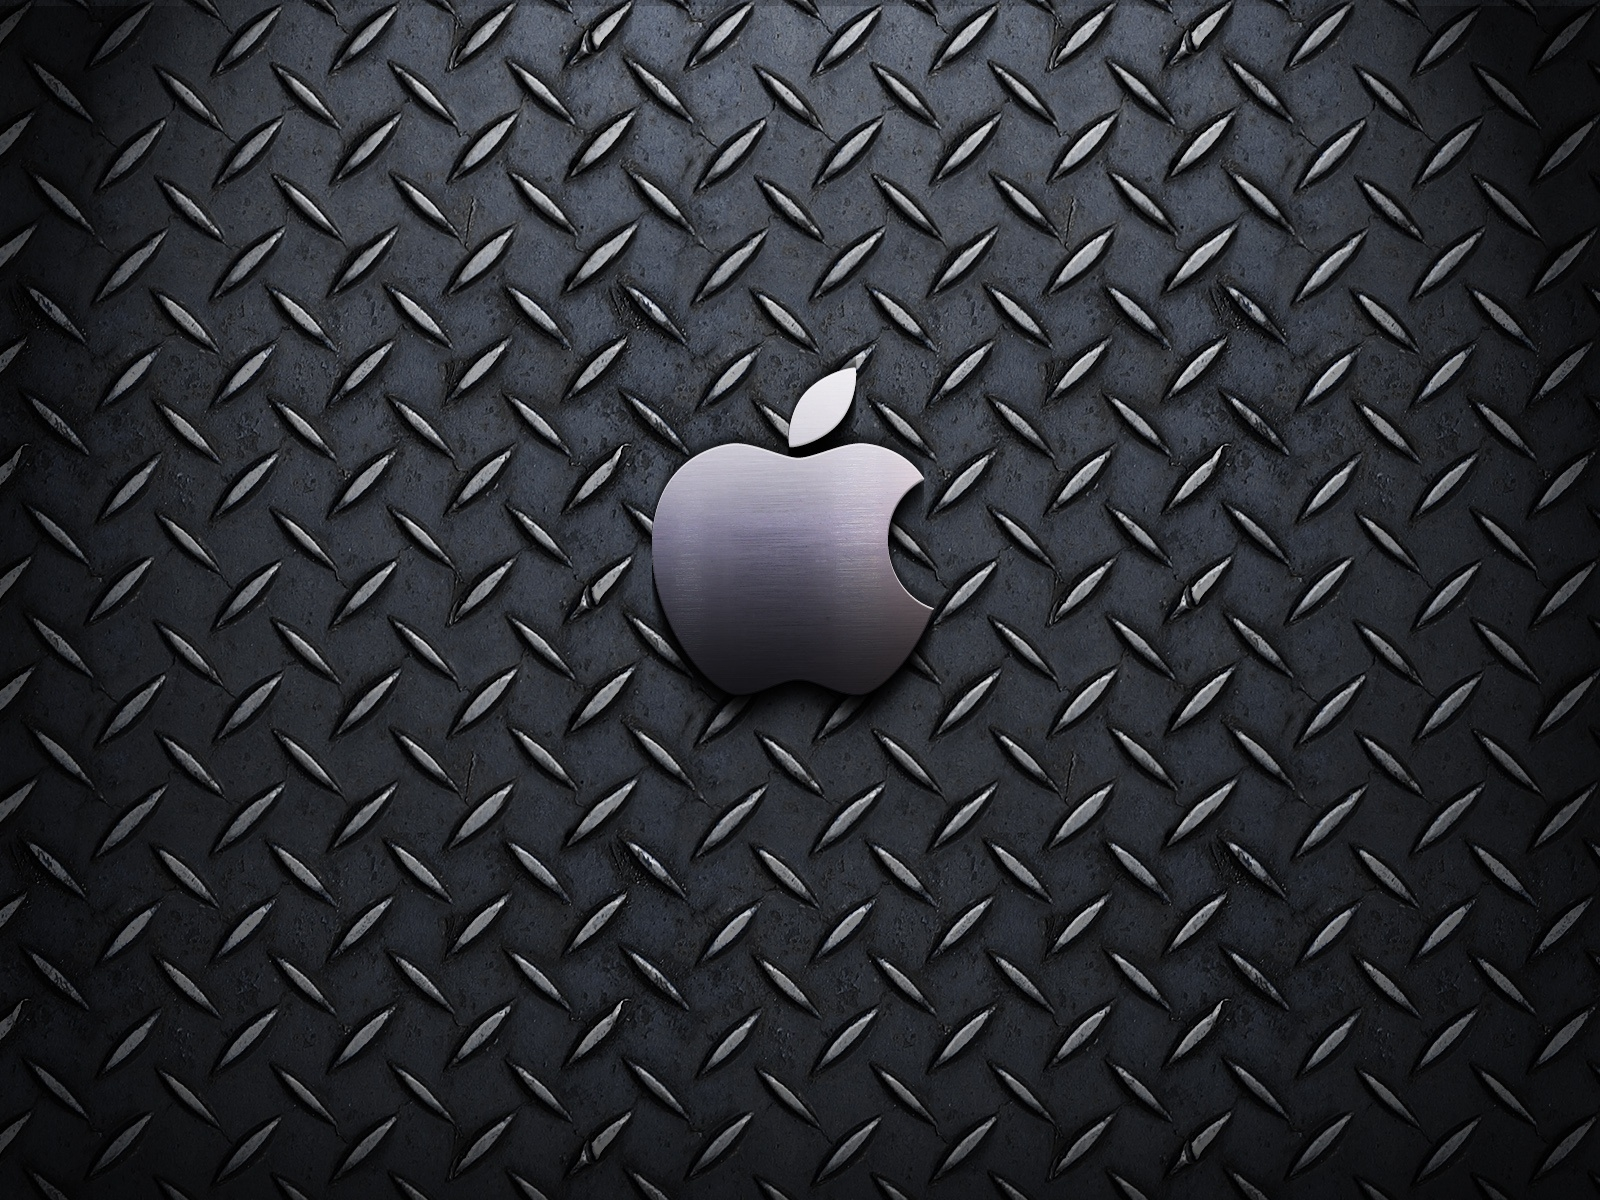 Industrial Apple for 1600 x 1200 resolution